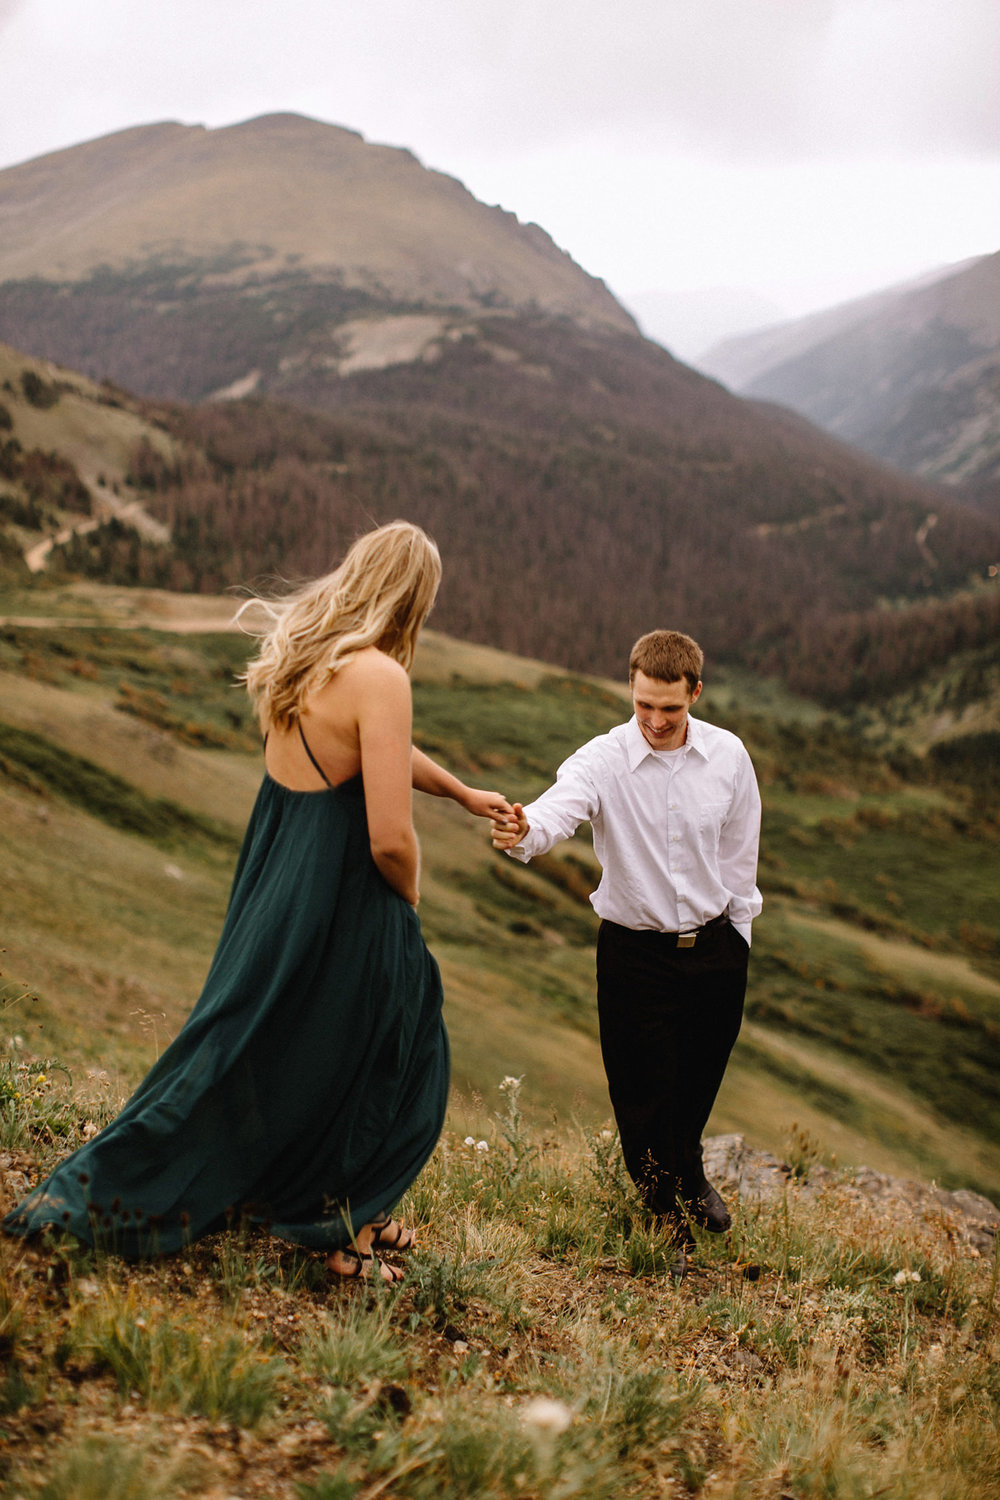 Rocky Mountain Engagement National Park Engaged Photos Wedding Elopement Portrait Mountains Trail Ridge Rd Peak Alpine Dress Lulus Rules Permit Photo Adventure Love Couples Destination Liz Osban photography Cheyenne Wyoming23.jpg